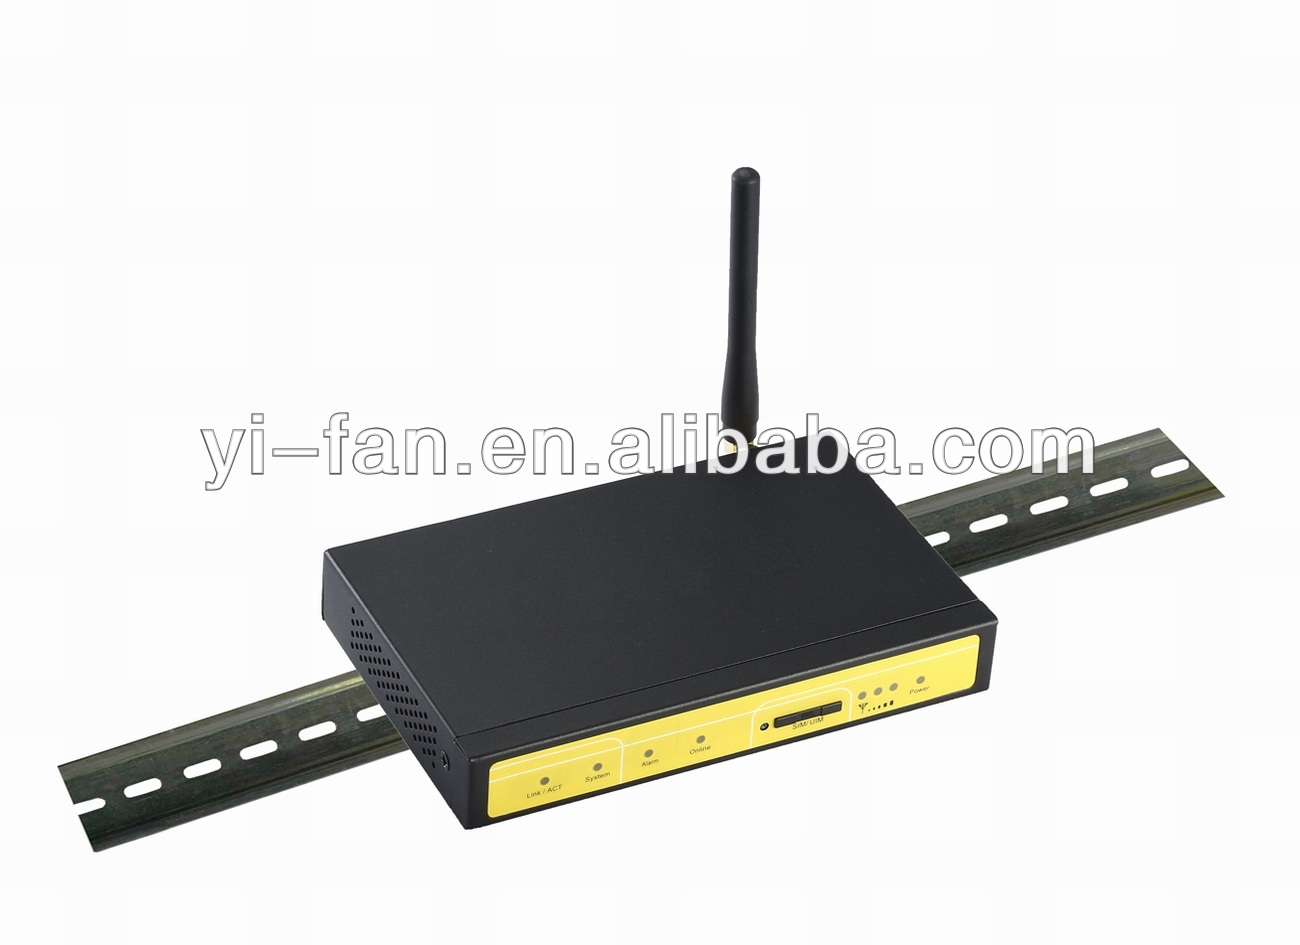 F3425 H High speed 21Mbp HSPA industrial 3G router with Din Rail mounting for ATM Kiosk